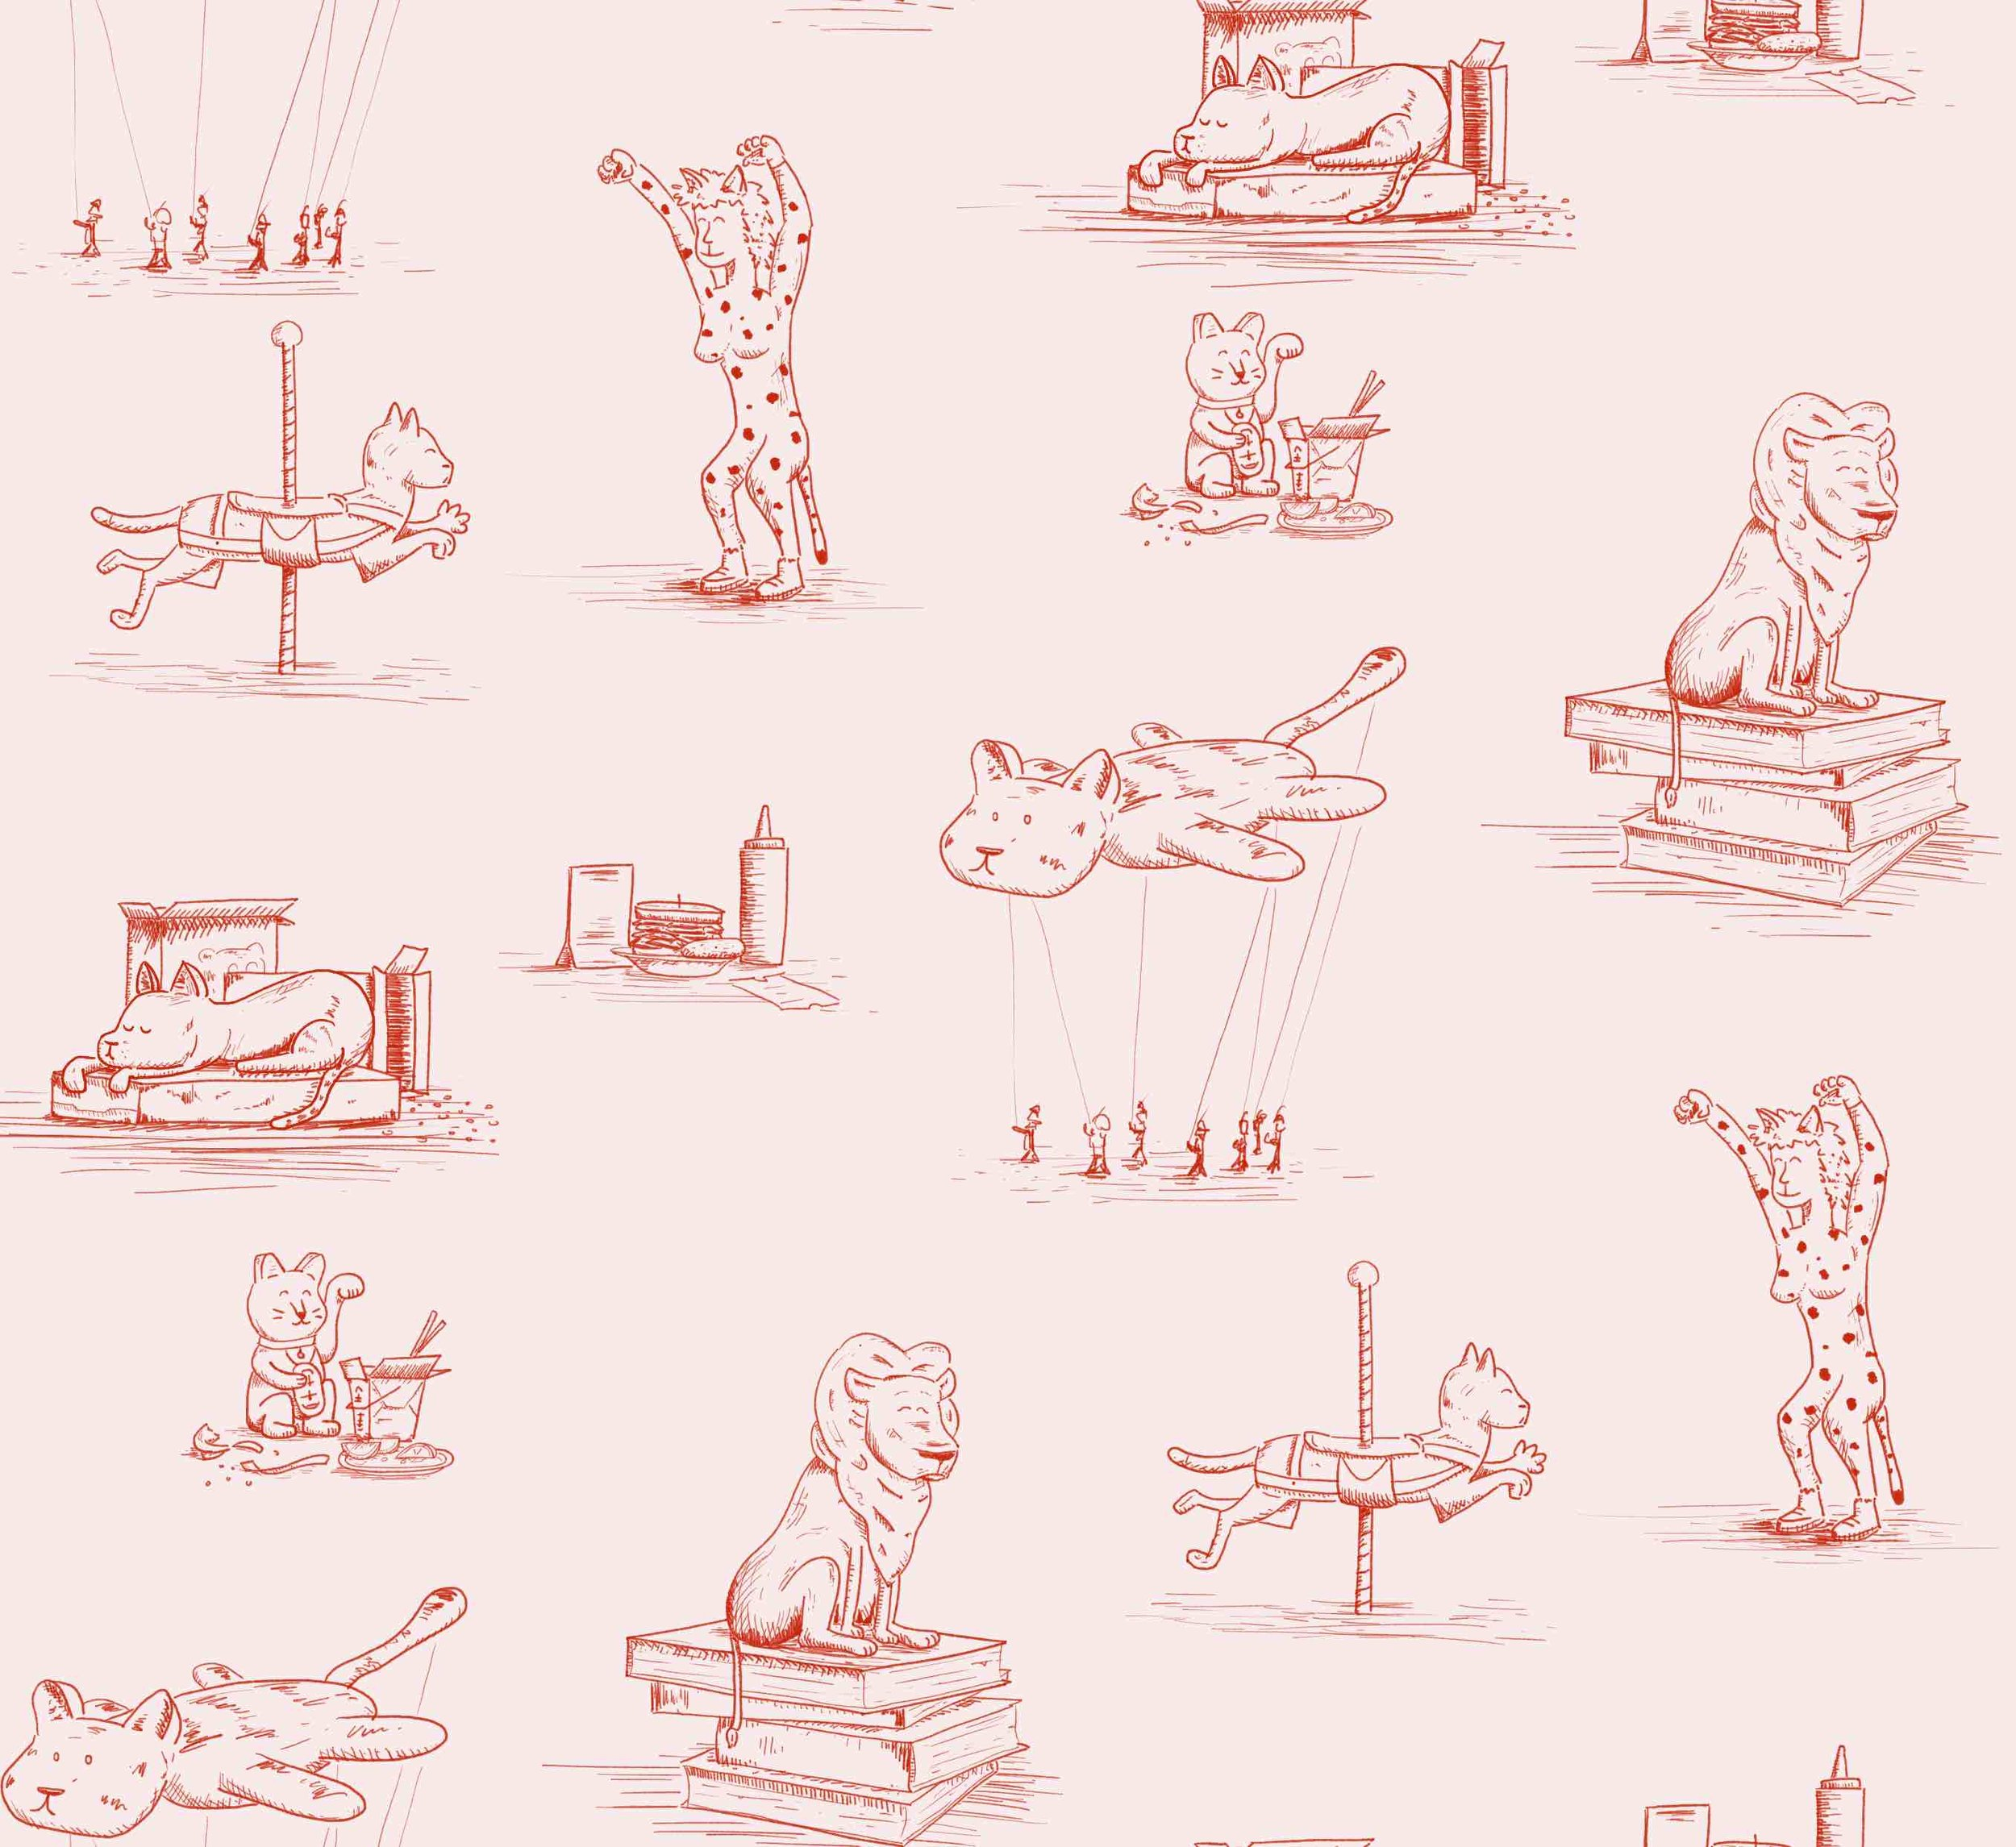 cats-of-nyc_toile-de-jouy_20x16_181108_nh_v2.4.1.jpeg